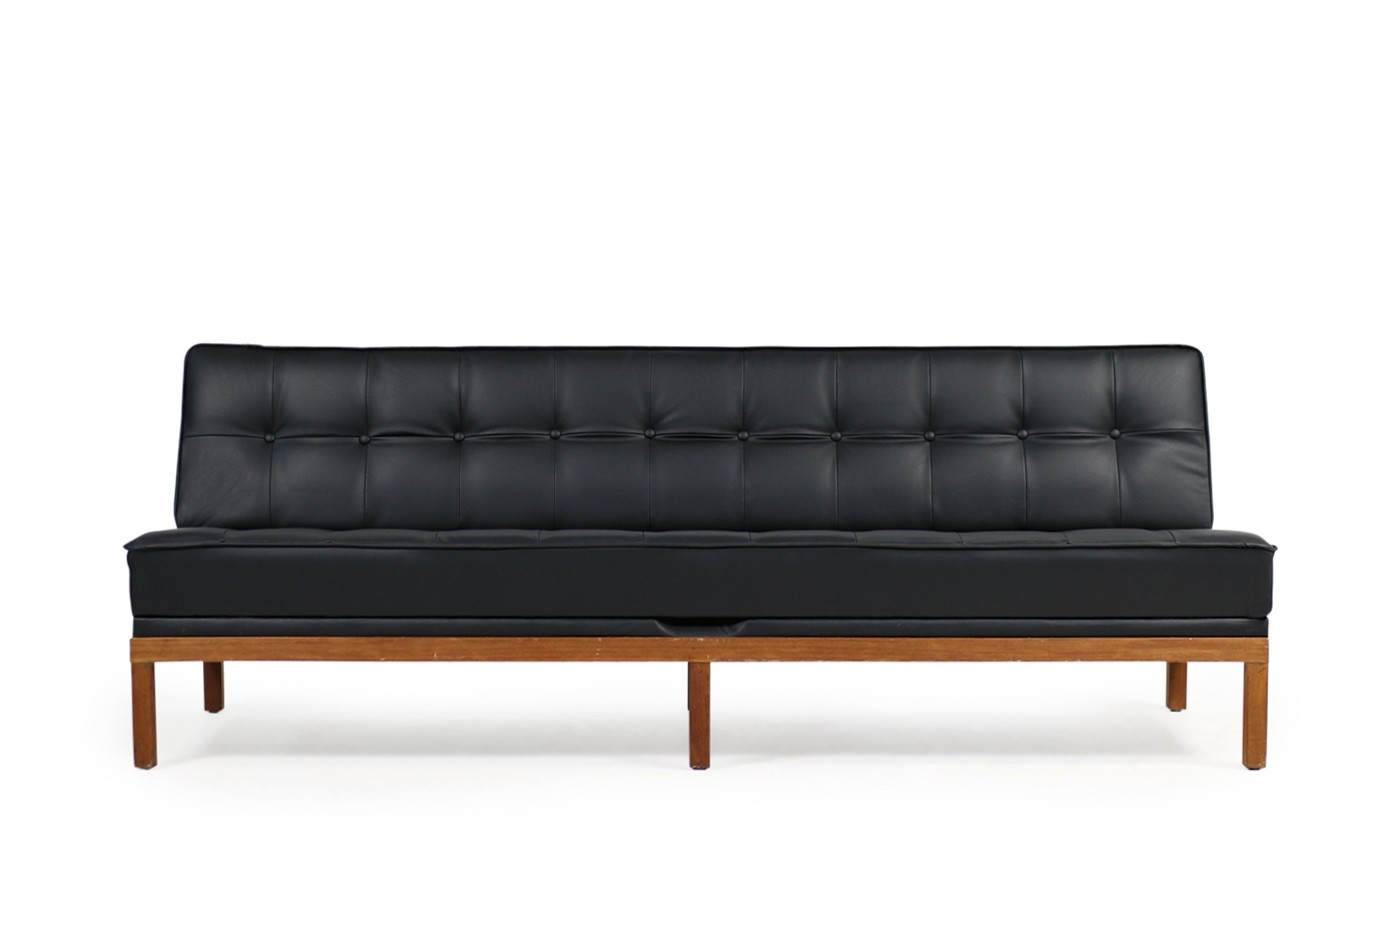 Sofa 60er Johannes Spalt For Wittmann Daybed Mod Constanze Teak Leather